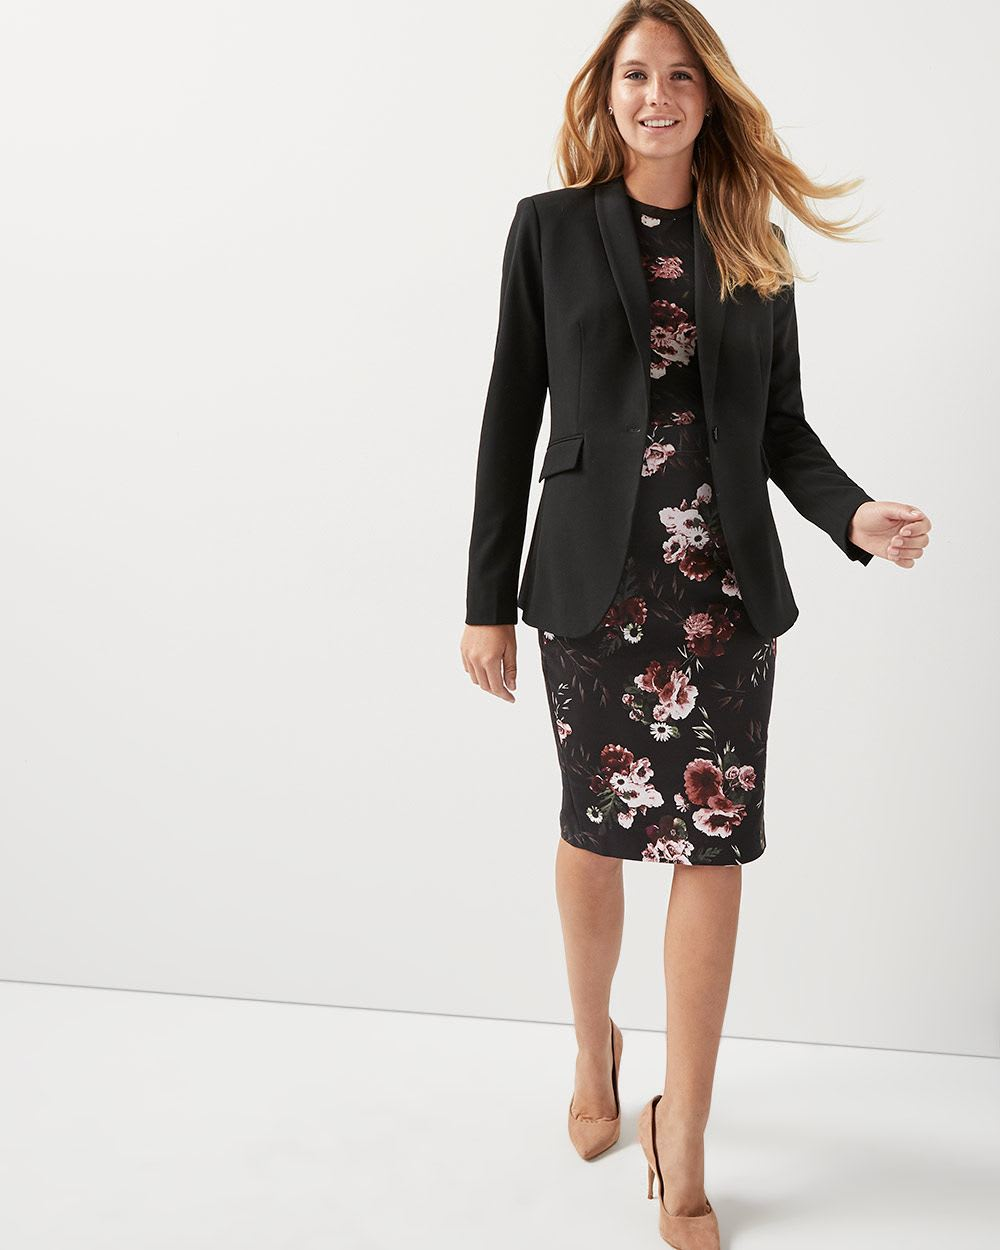 49c98113b474e High-Waist Floral Modern chic pencil skirt | RW&CO.